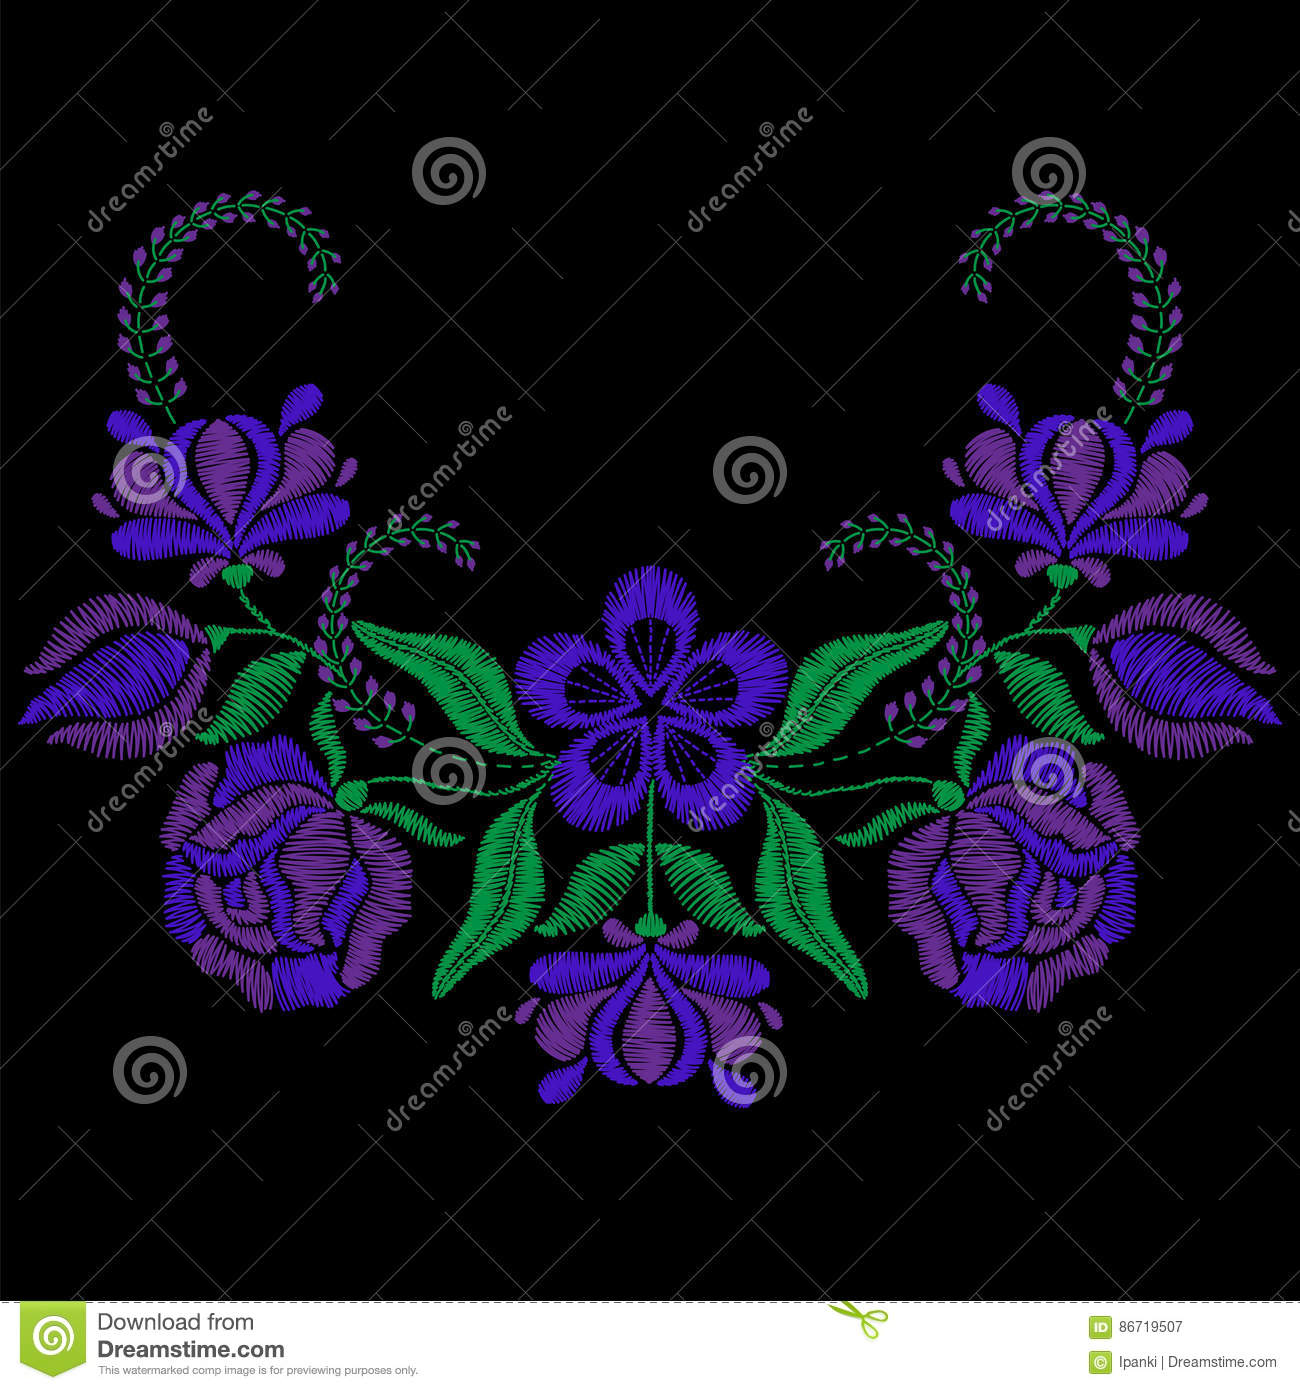 Color Embroidery With Violet Flower Roses Necklace For Fabric Stock Vector Illustration Of Mexican Boho 86719507